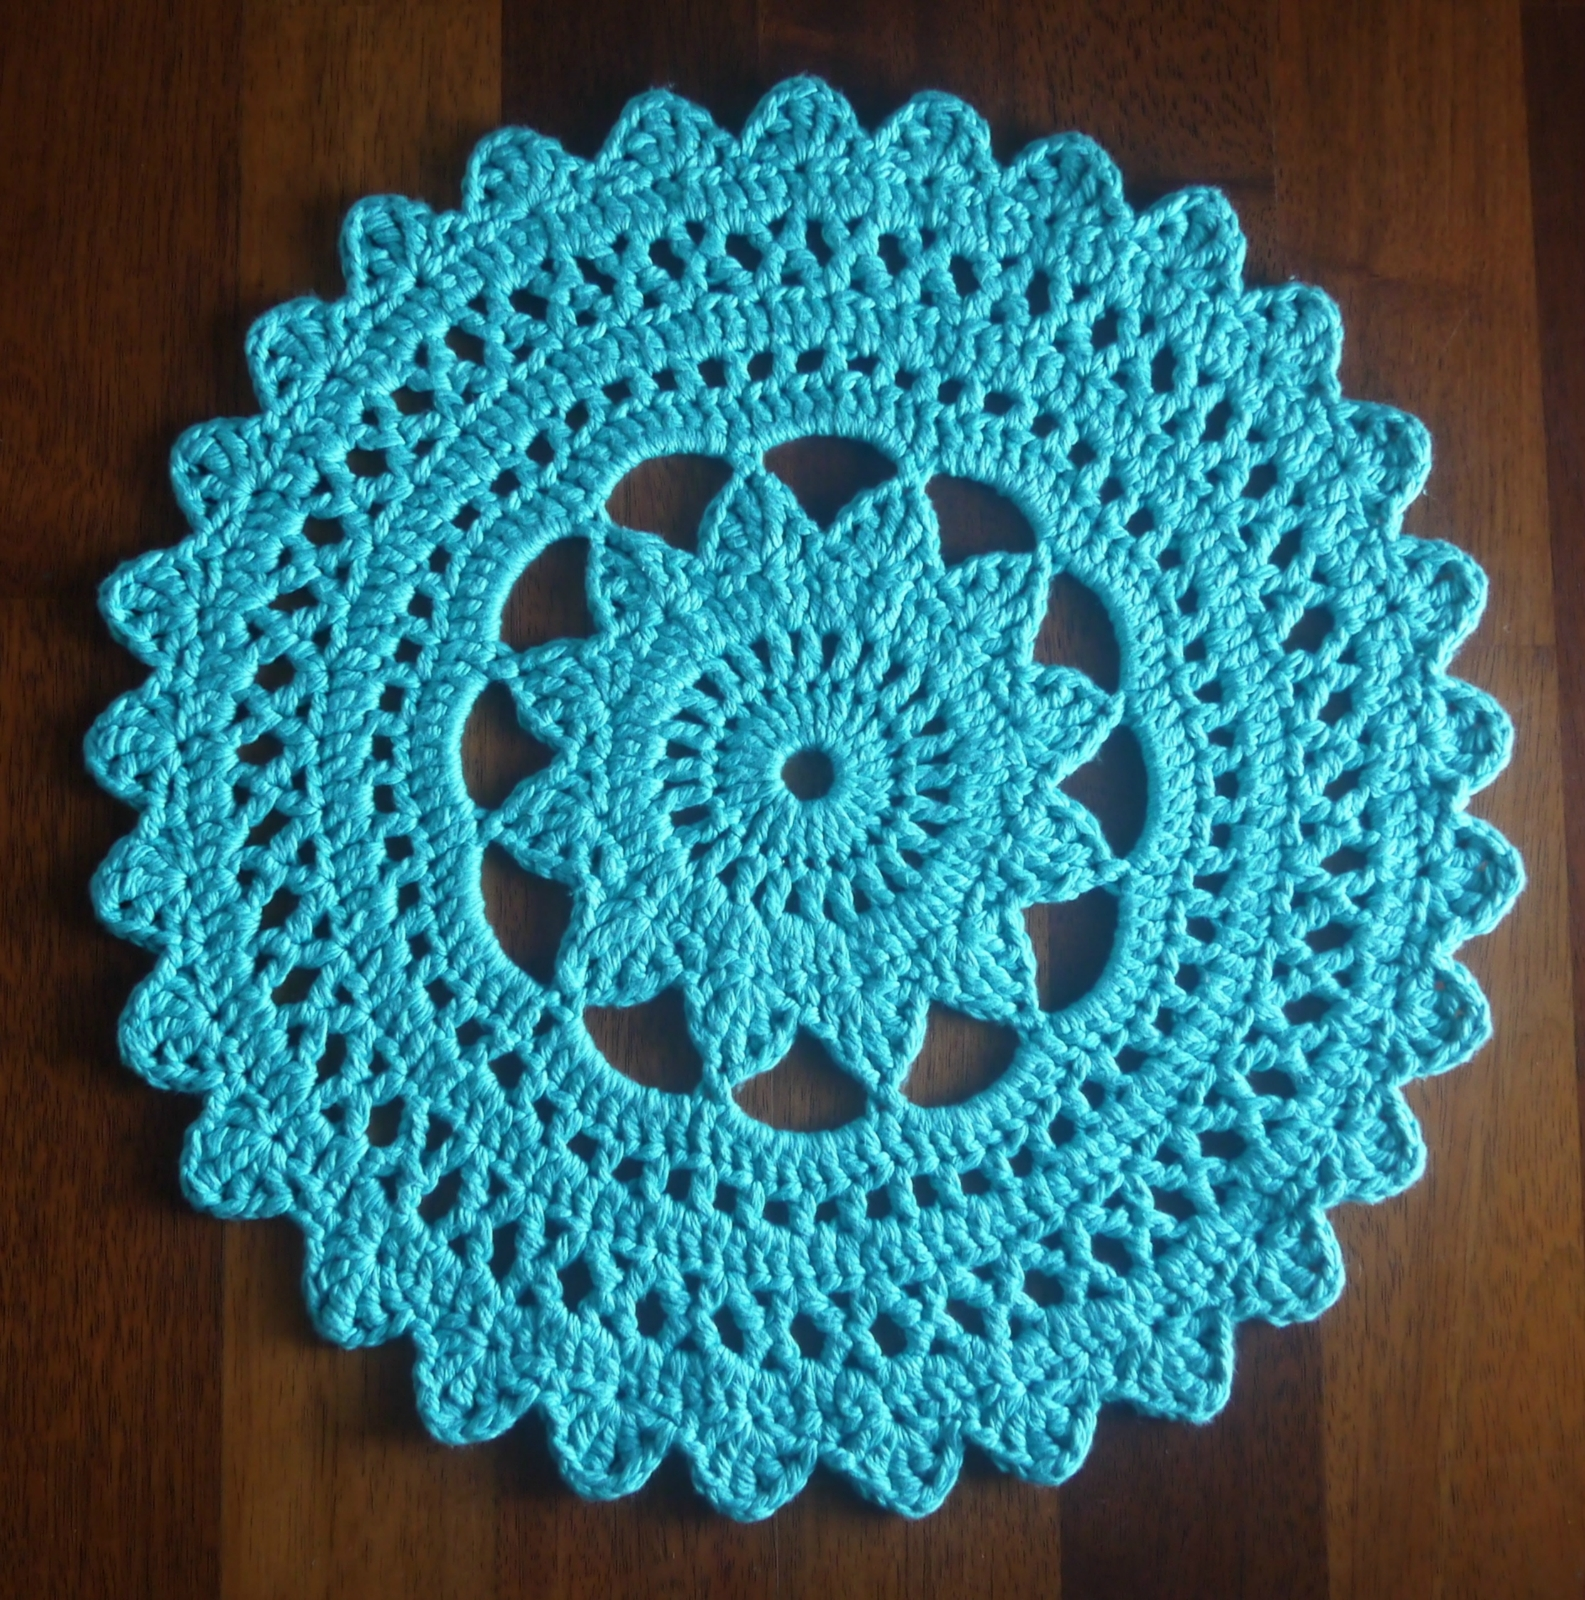 Crochet Rug Patterns : Circular Lace Pattern Crochet Doily Rug Felt